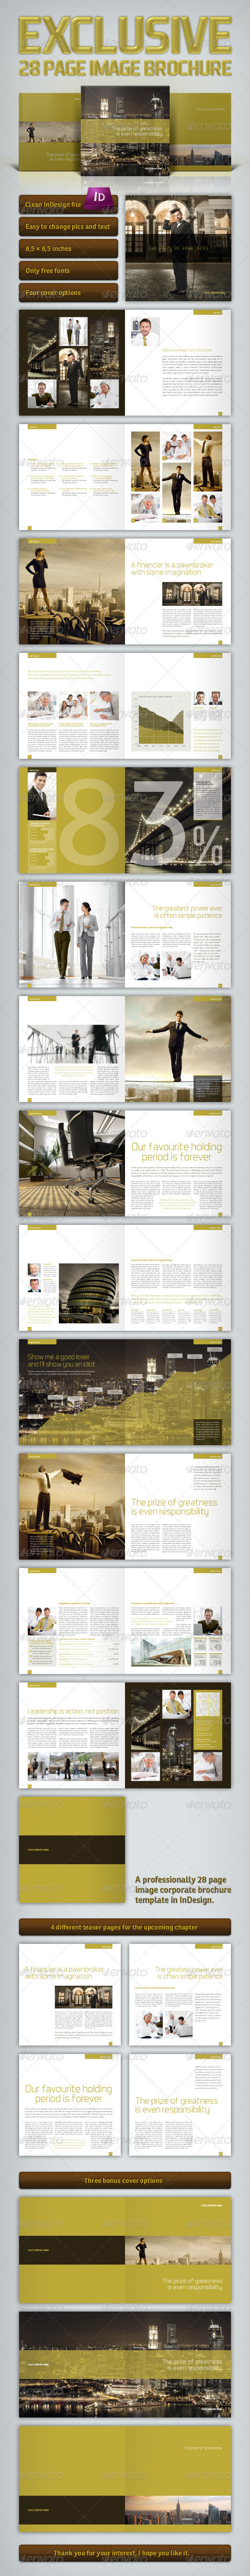 Exclusive Brochure - Corporate Brochures